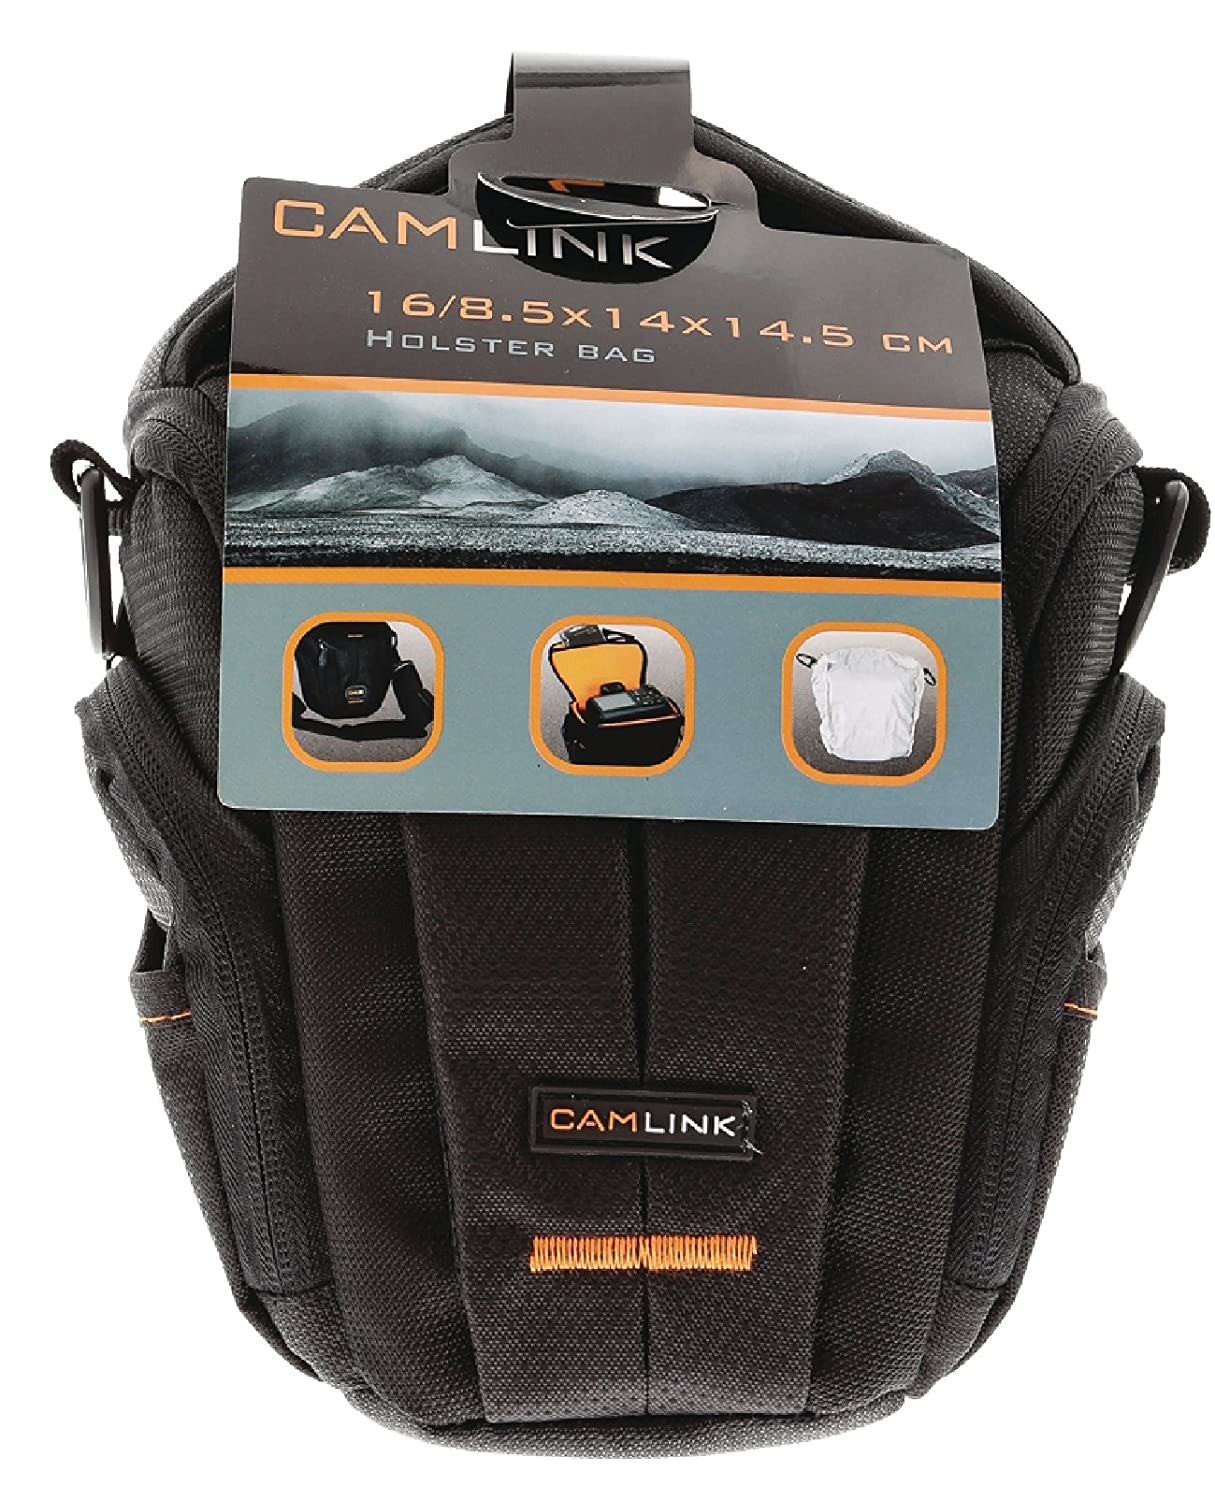 Camlink 16//18.5 x 14 x 14.5 cm Holster Bag for Camera Balck//Orange